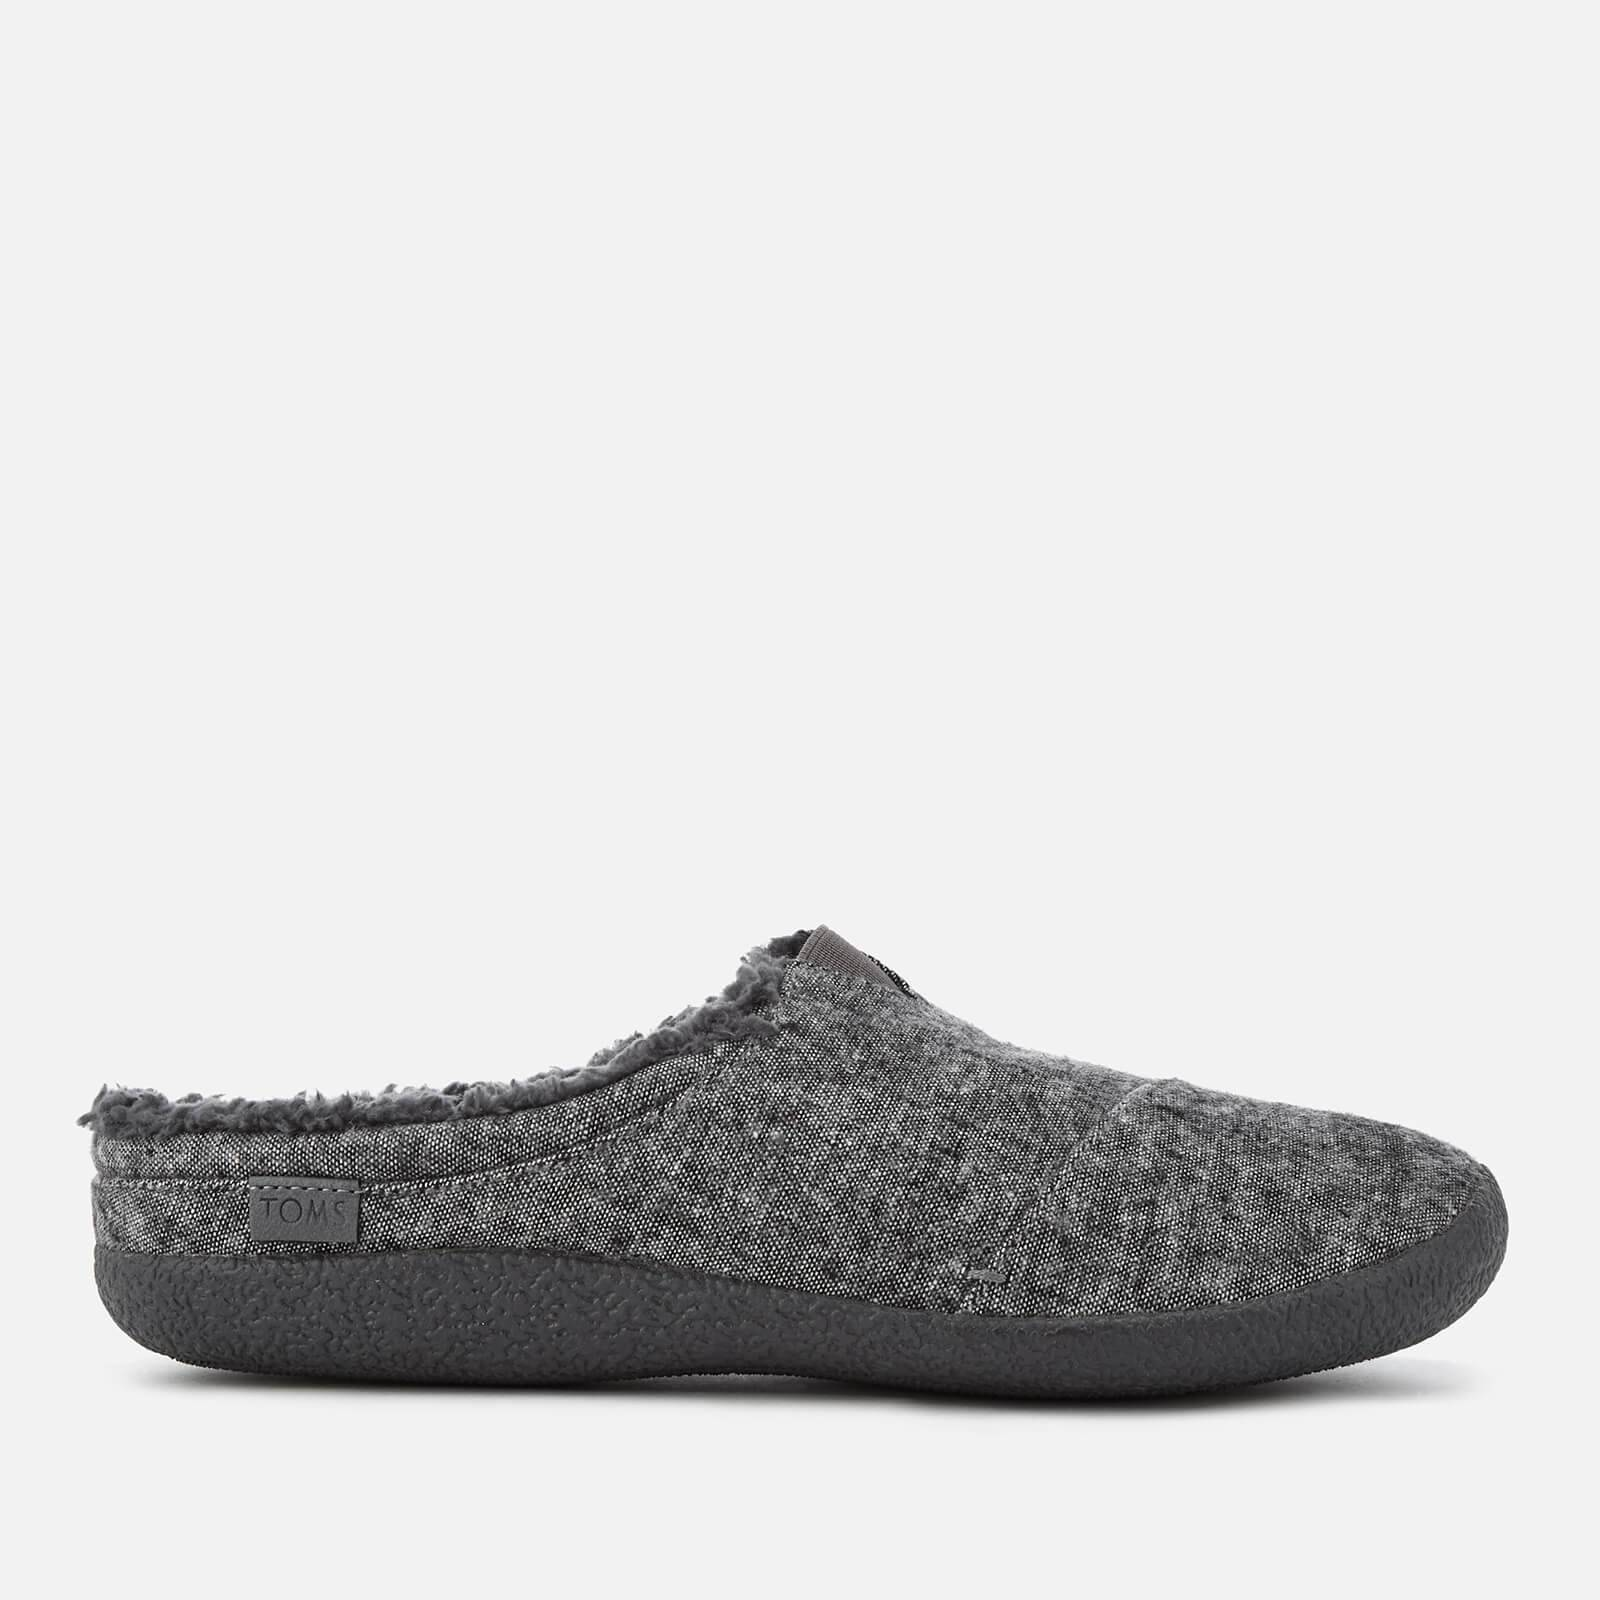 TOMS Men's Berkeley Slub Textile Slippers - Grey - UK 9/US 10 - Grey